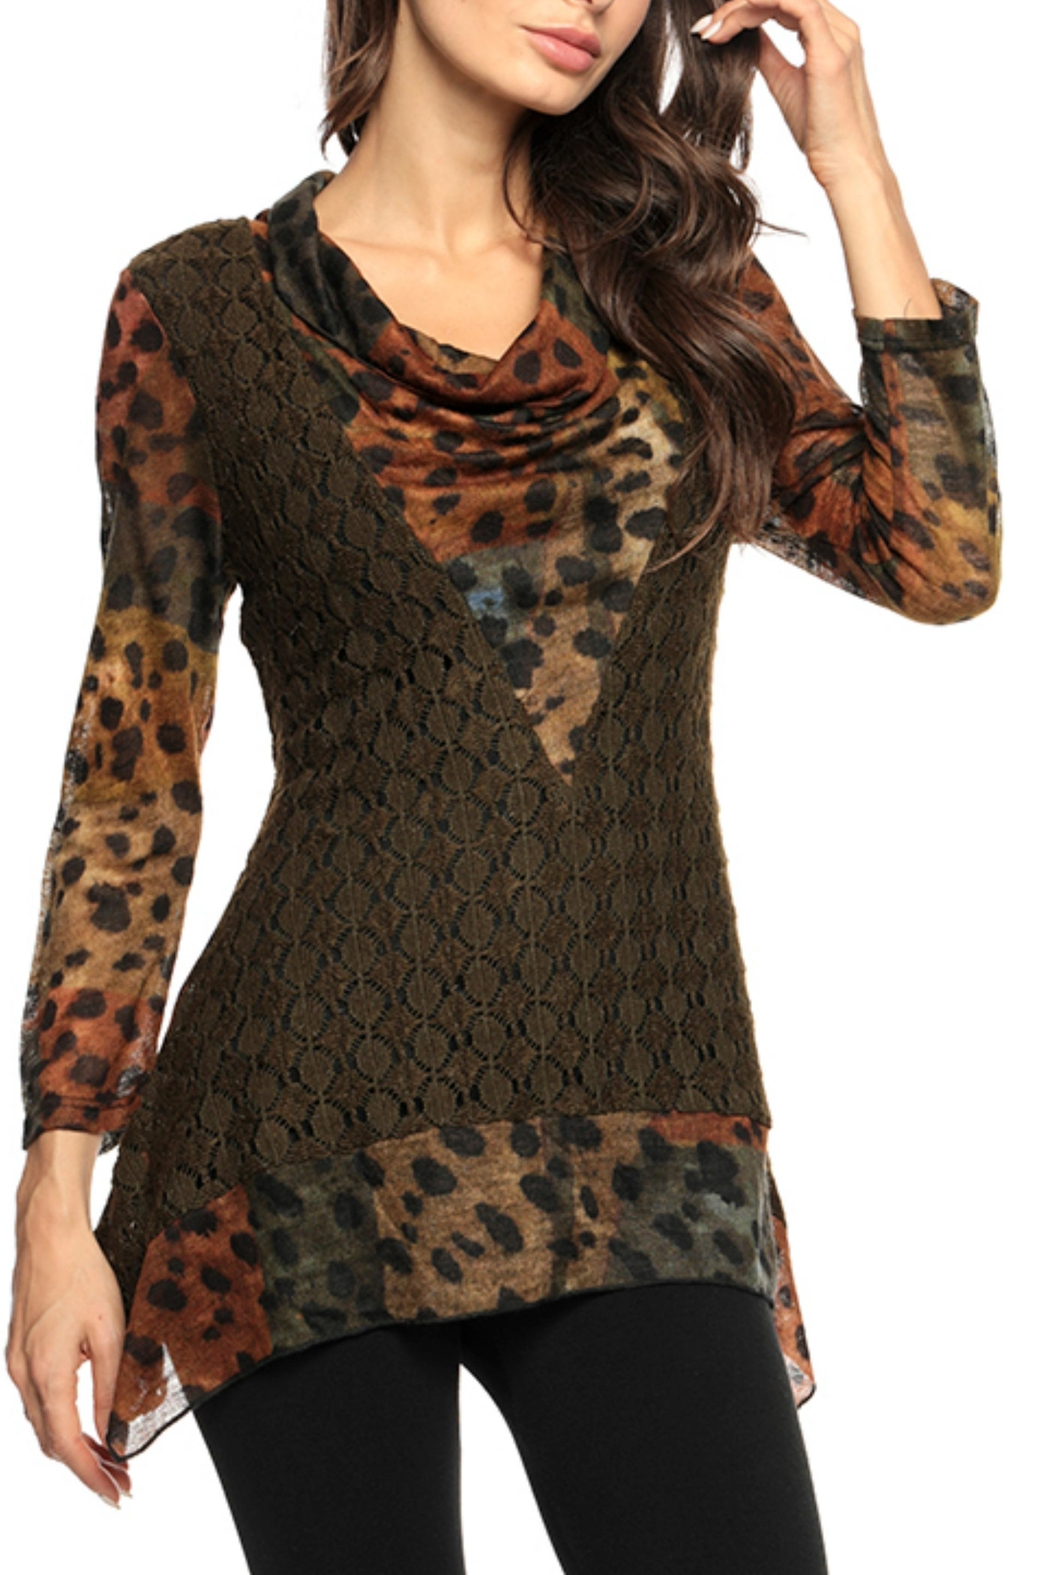 Adore Animal Texture Tunic - Main Image